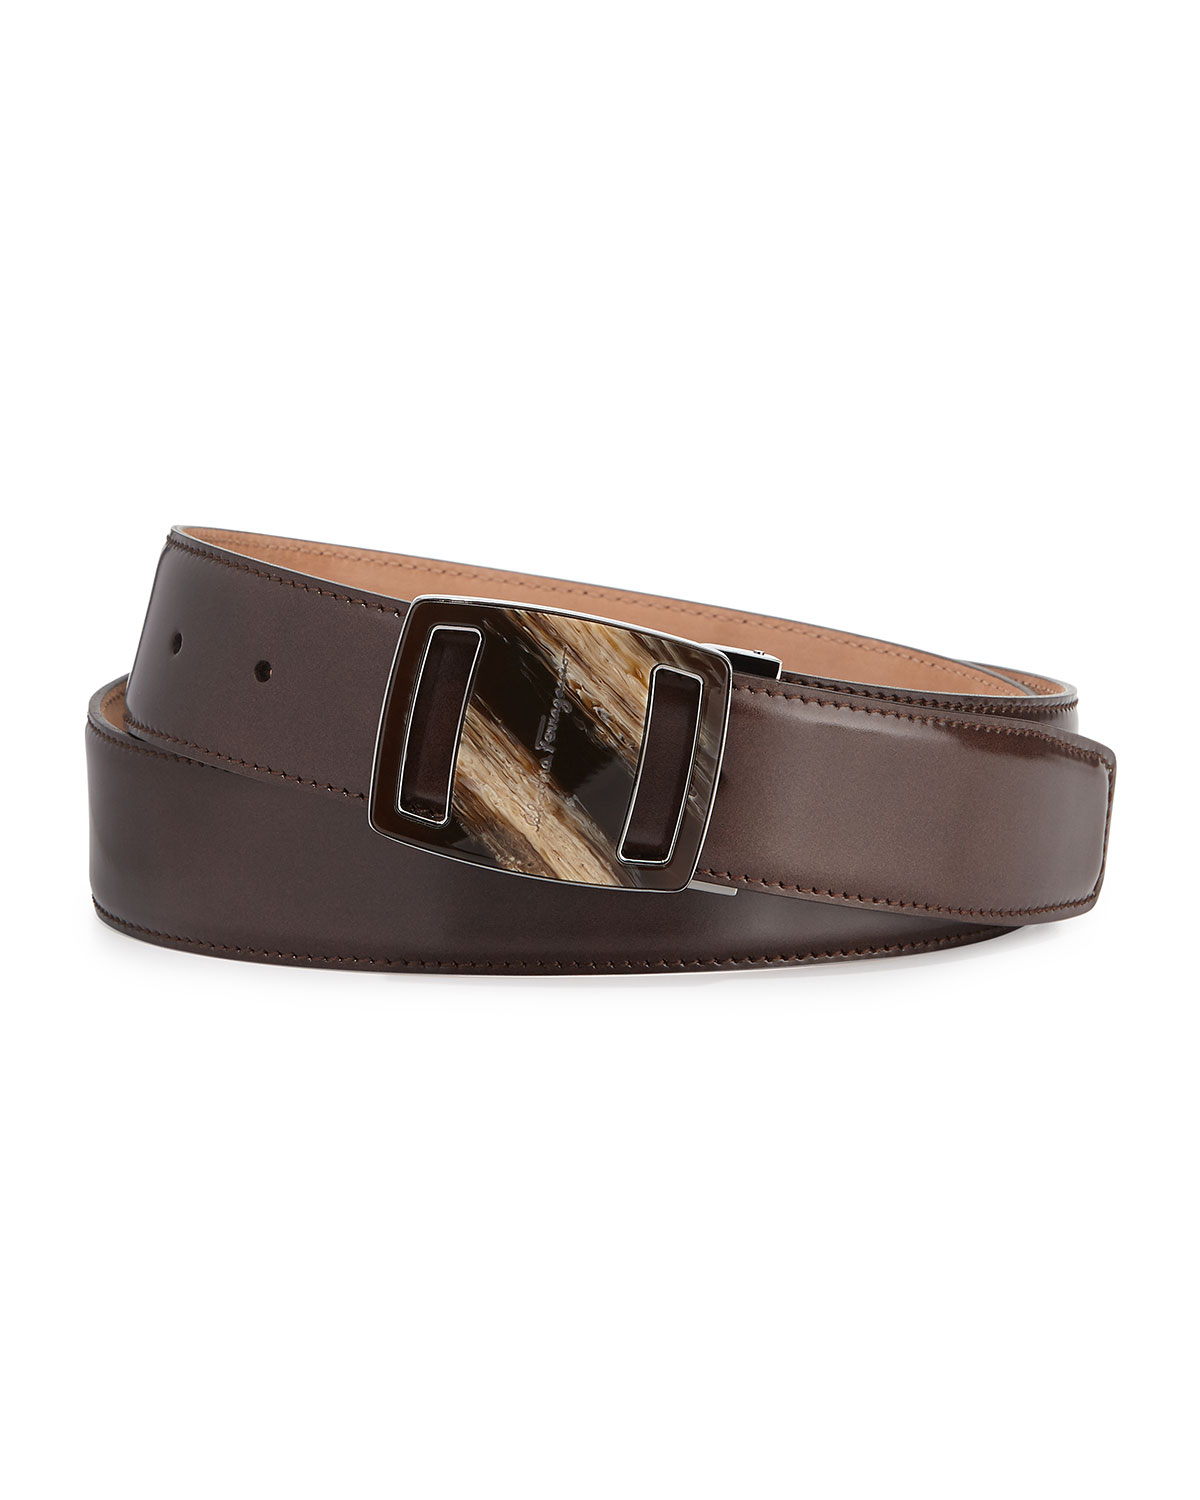 ferragamo vara sardegna oversized leather belt in brown